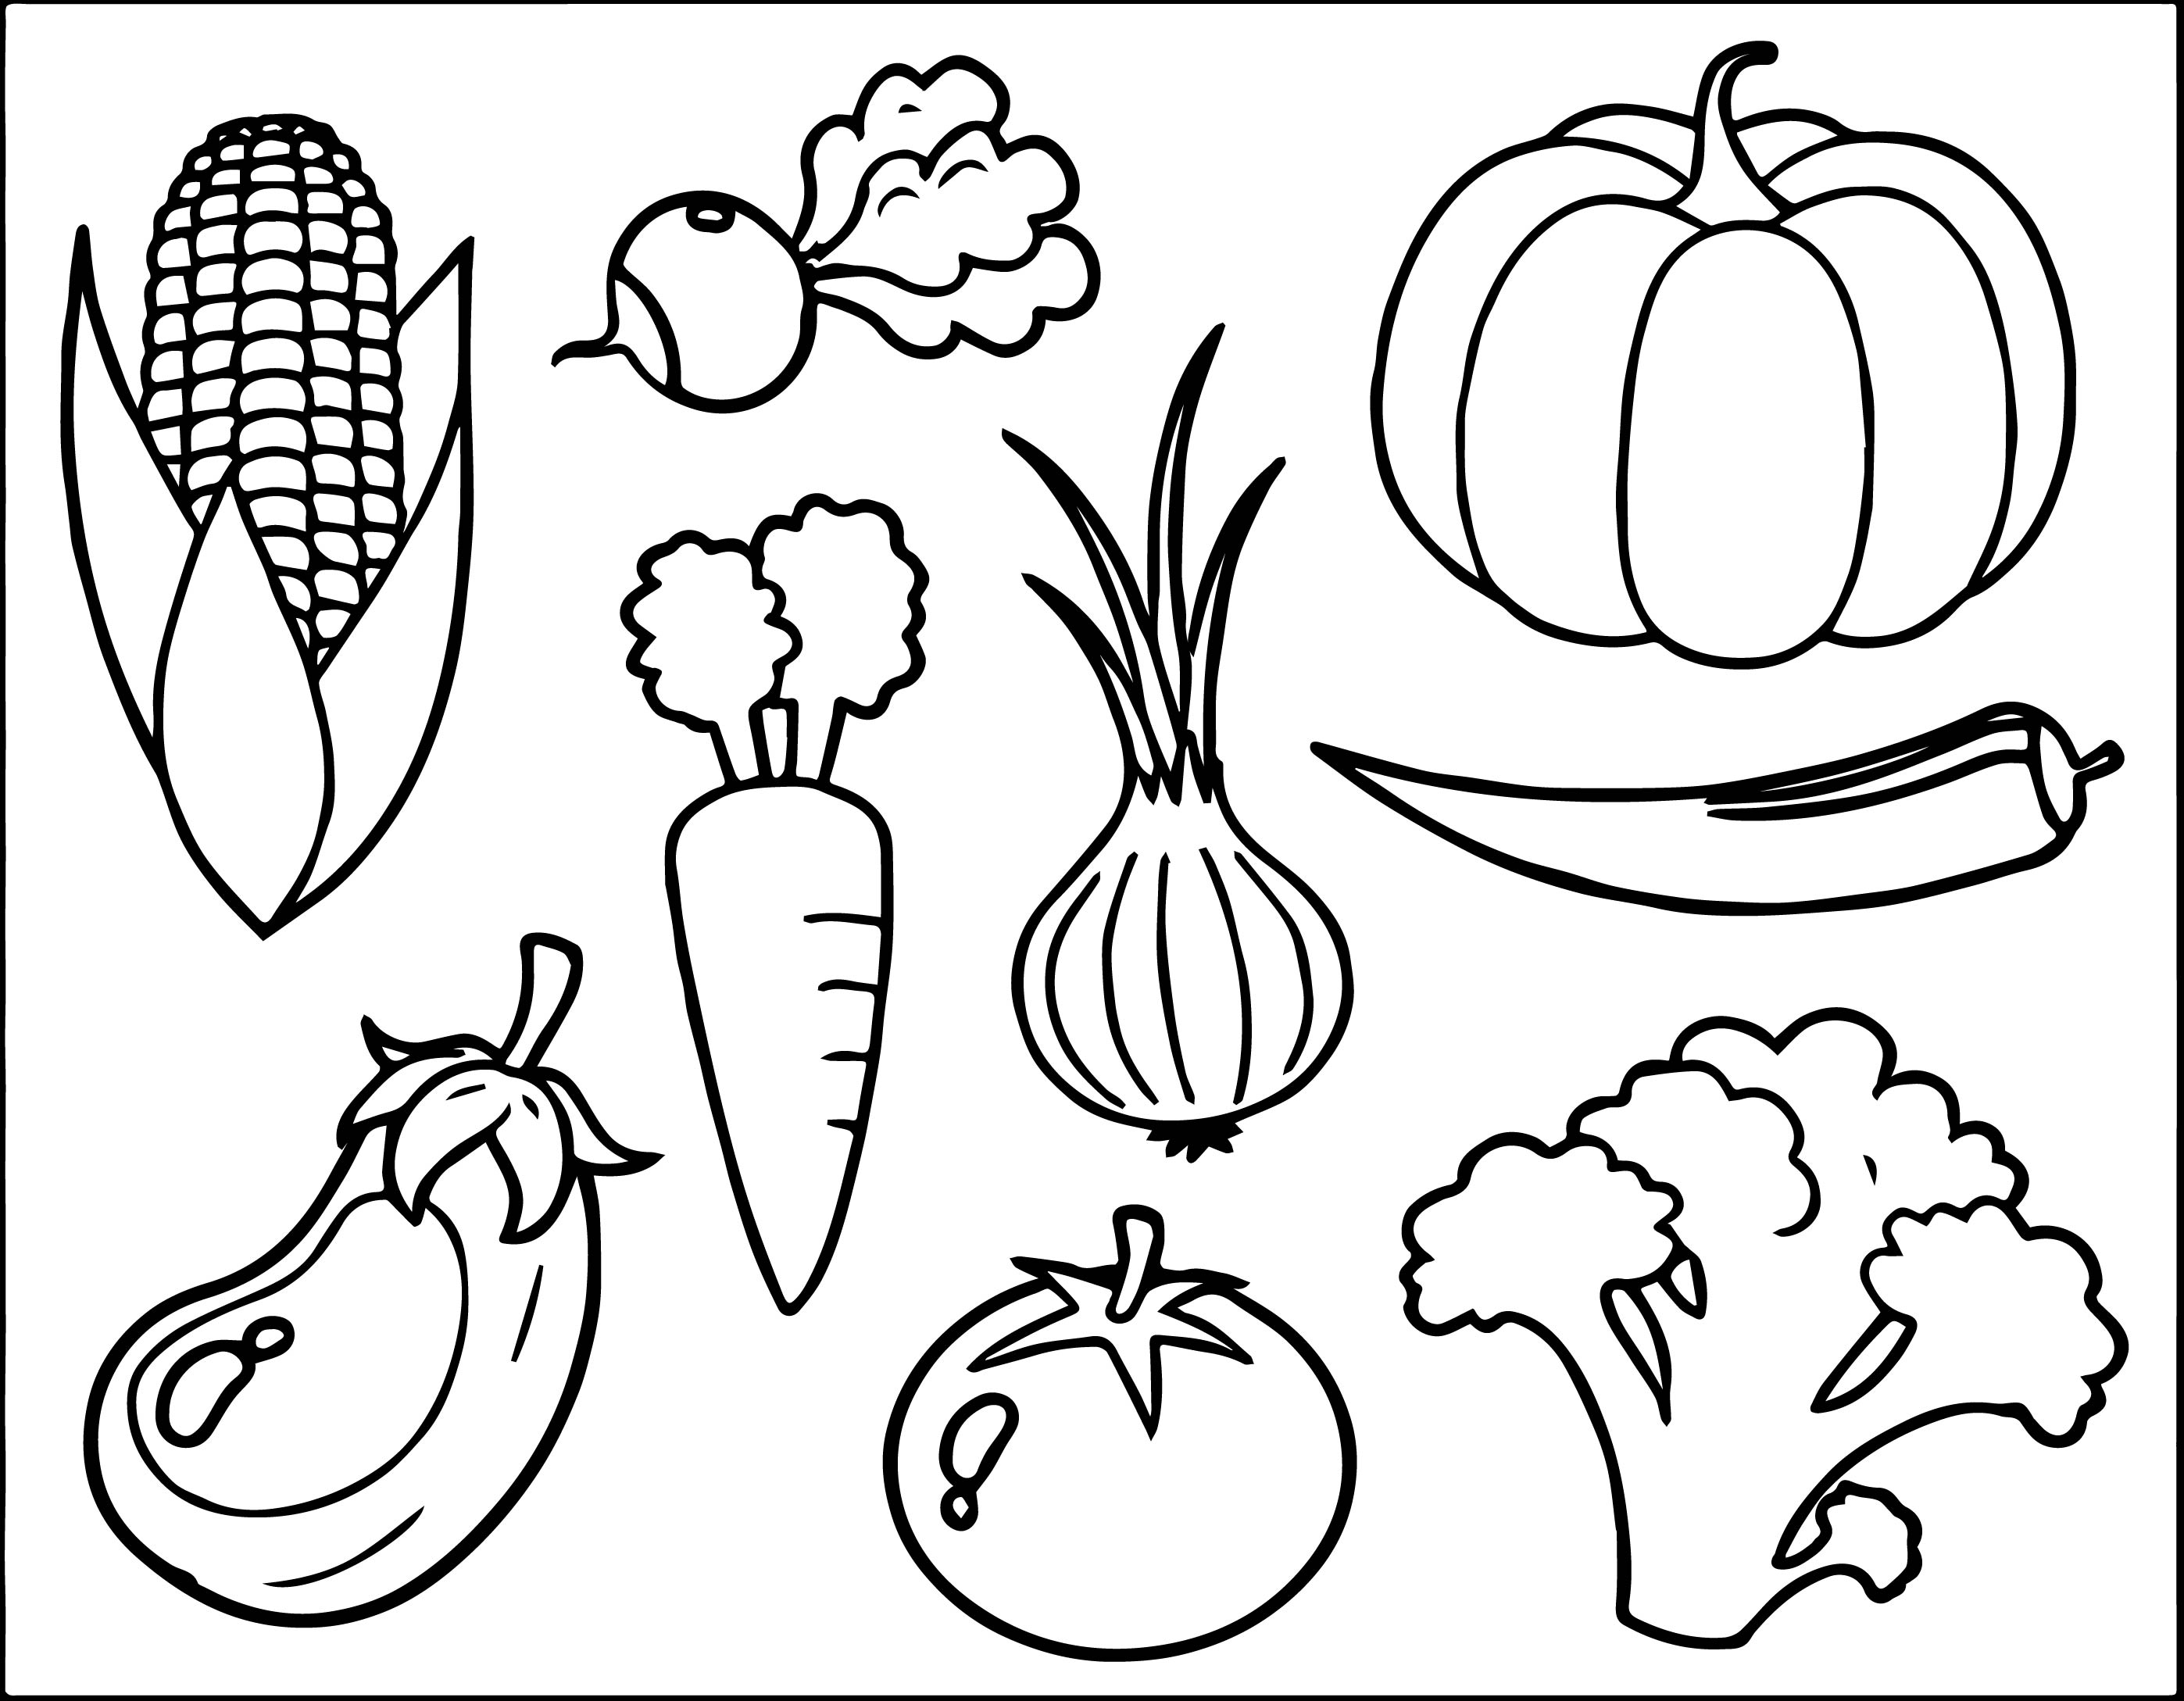 Free Vegetable Coloring Page | Wecoloringpage